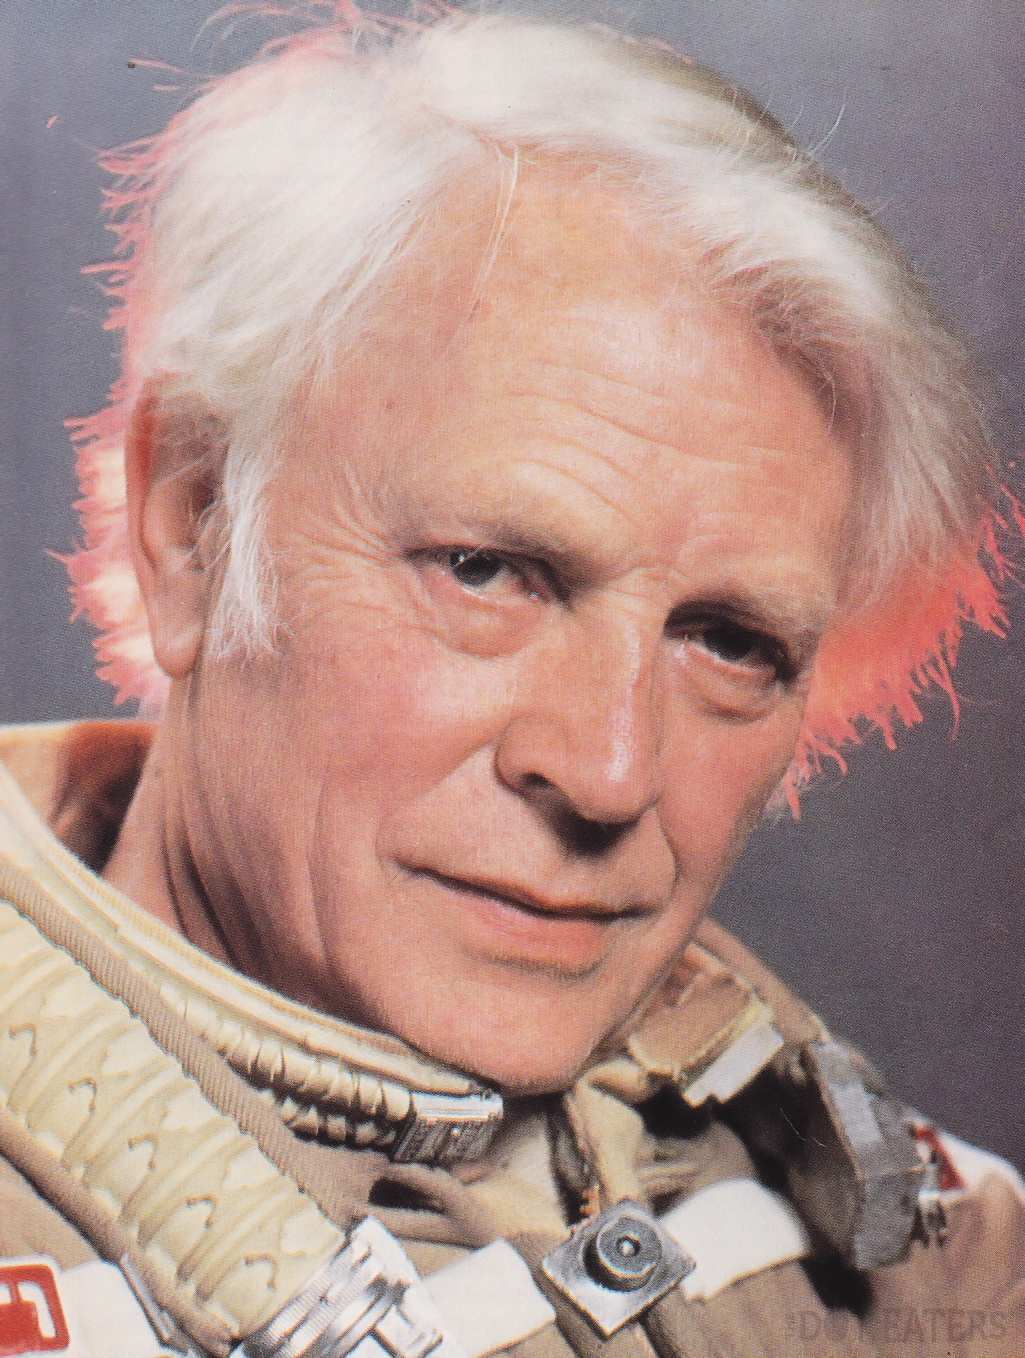 Actor Dan O'Herily, star of video game themed movie The Last Starfighter